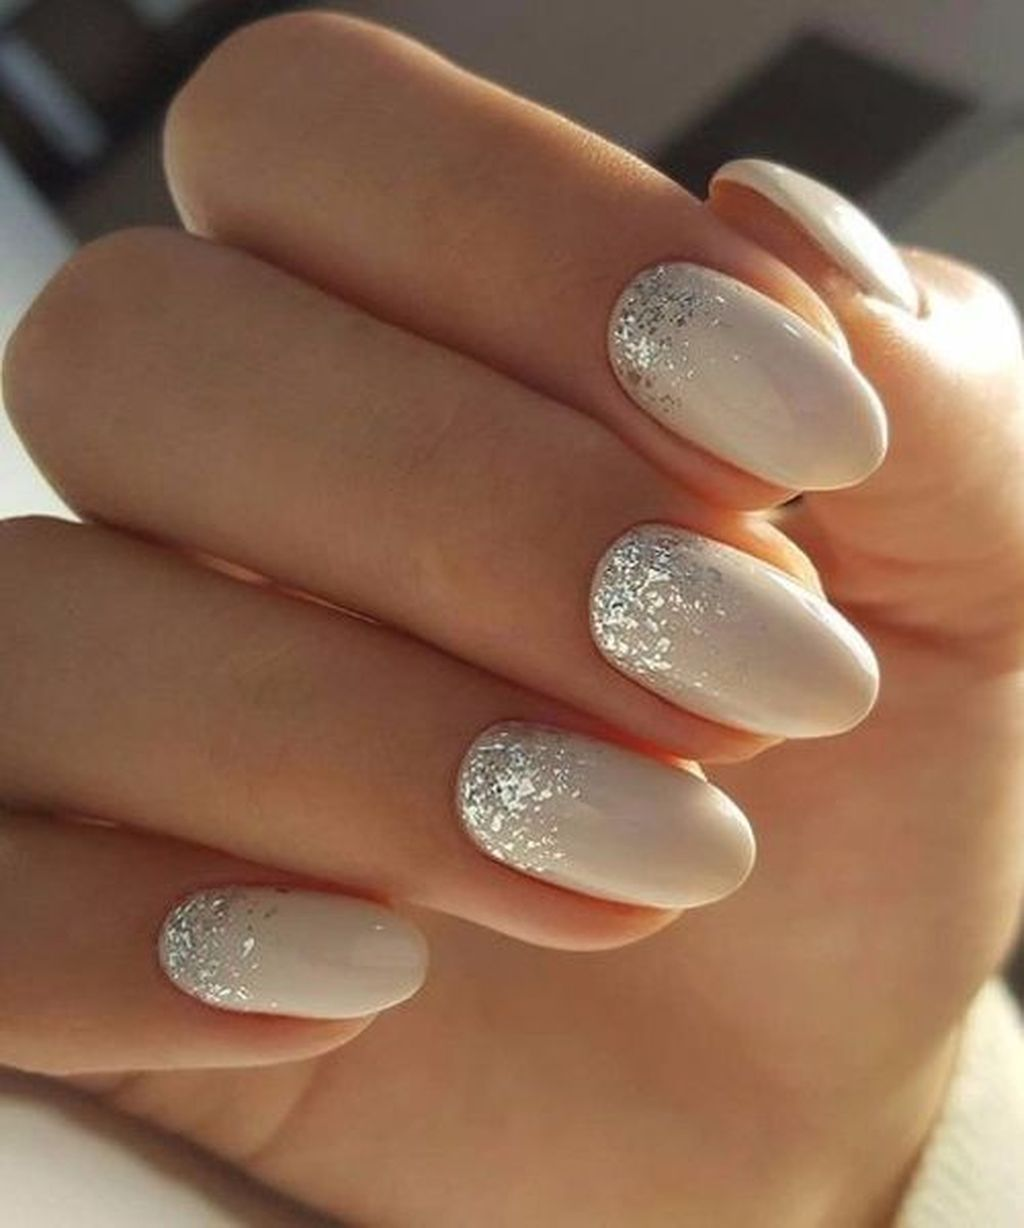 47 Creative Wedding Nails Ideas For Bride Wedding Nails Design Bride Nails Wedding Nail Art Design